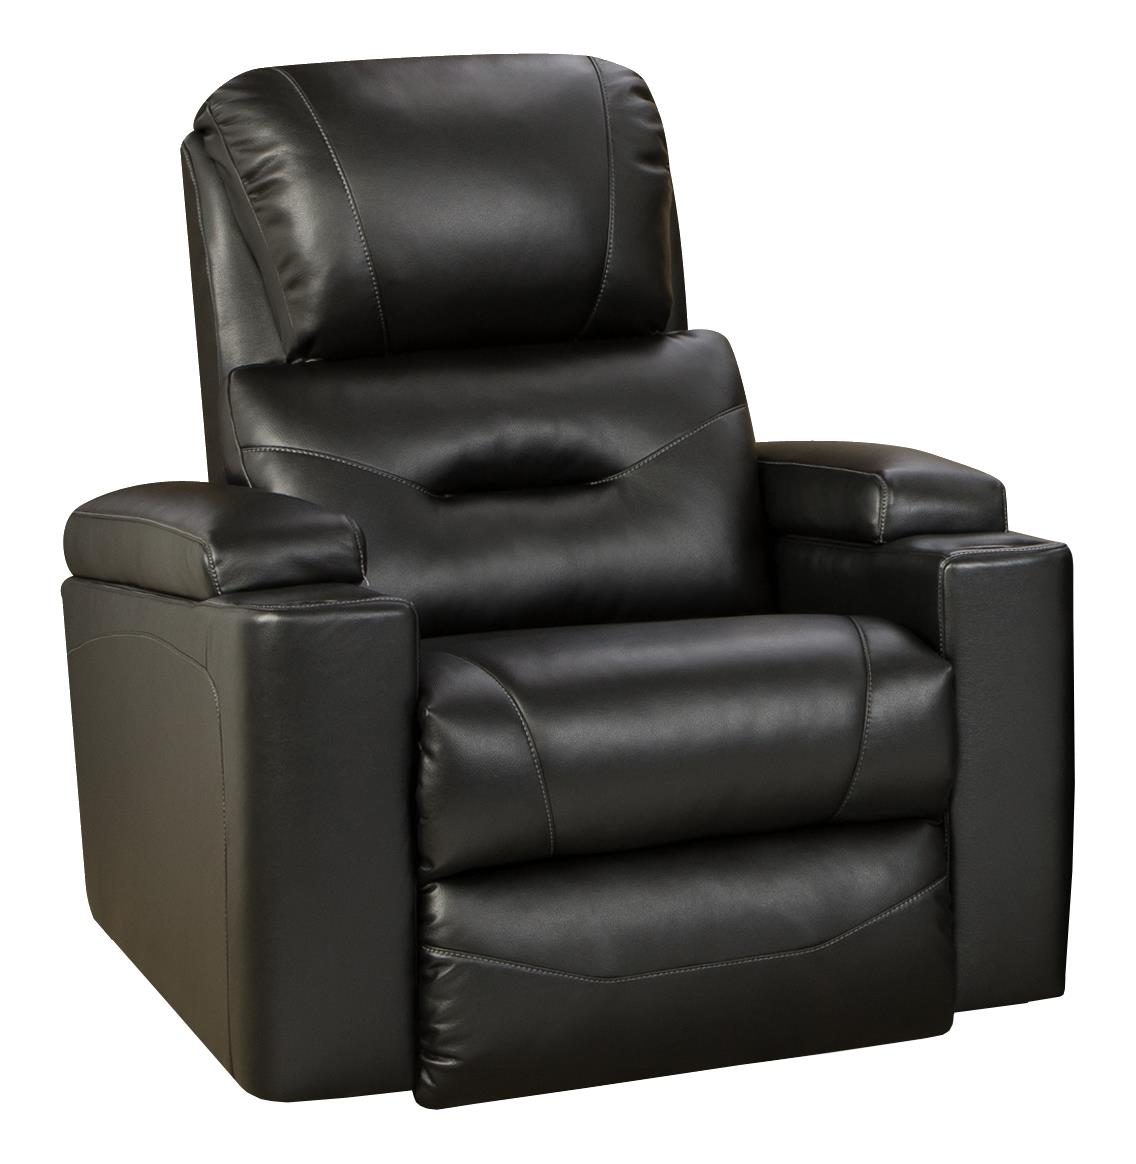 Southern Motion Infinity Lay-Flat Rocker Recliner - Item Number: 4222-205-13